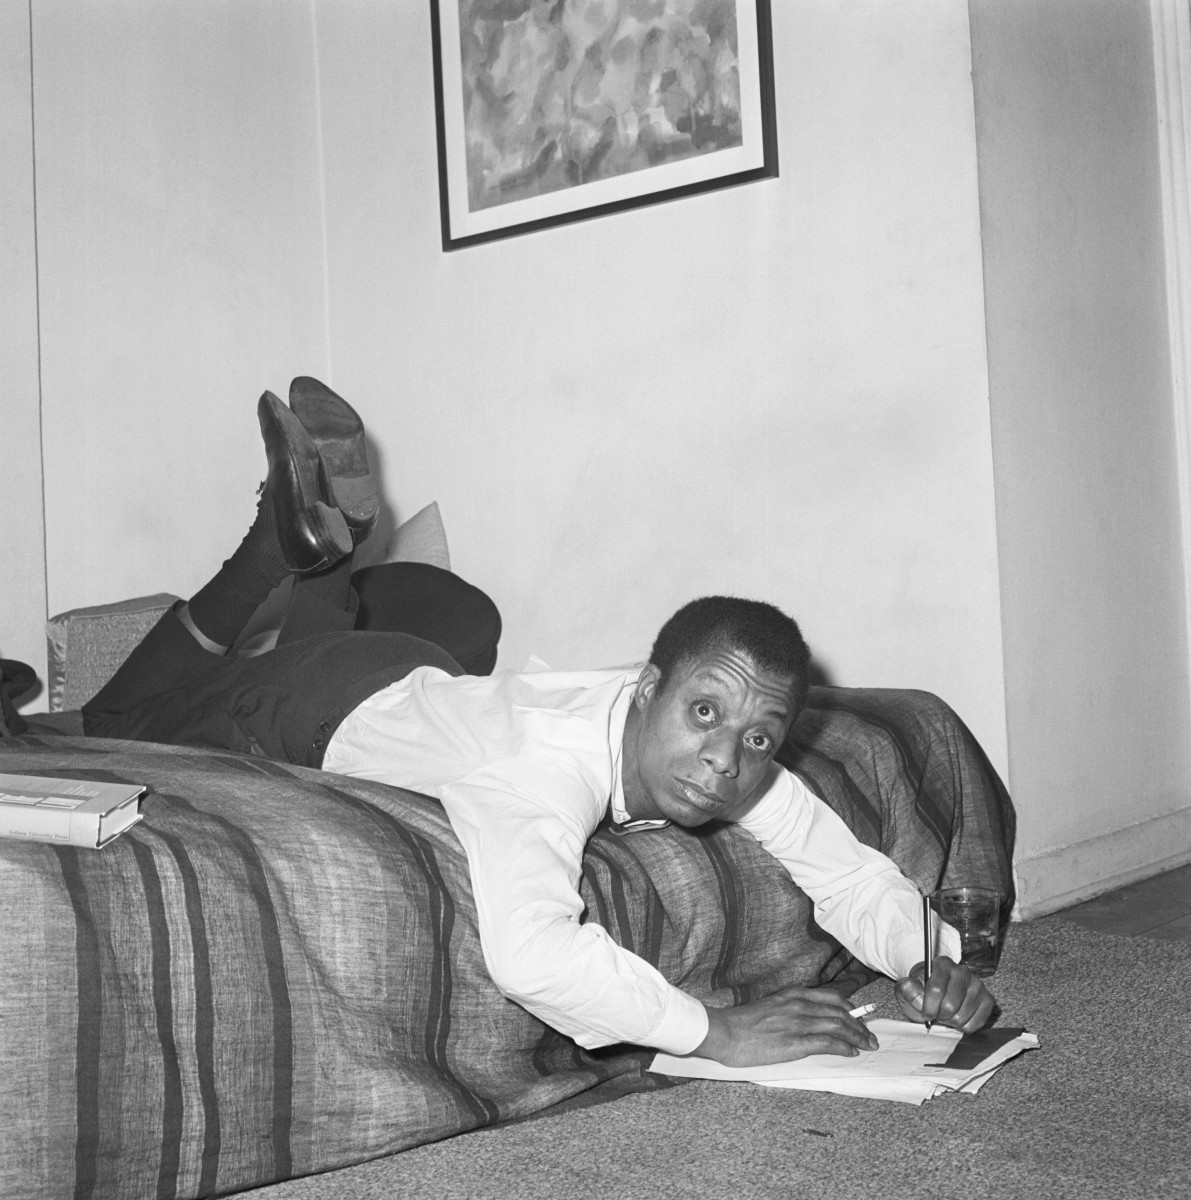 homosexuals and james baldwins role in the James baldwin's turkish decade expands the knowledge of baldwin's role as a transnational african american intellectual, casts new light on his later works, and suggests ways of reassessing his earlier writing in relation to ideas of exile and migration.